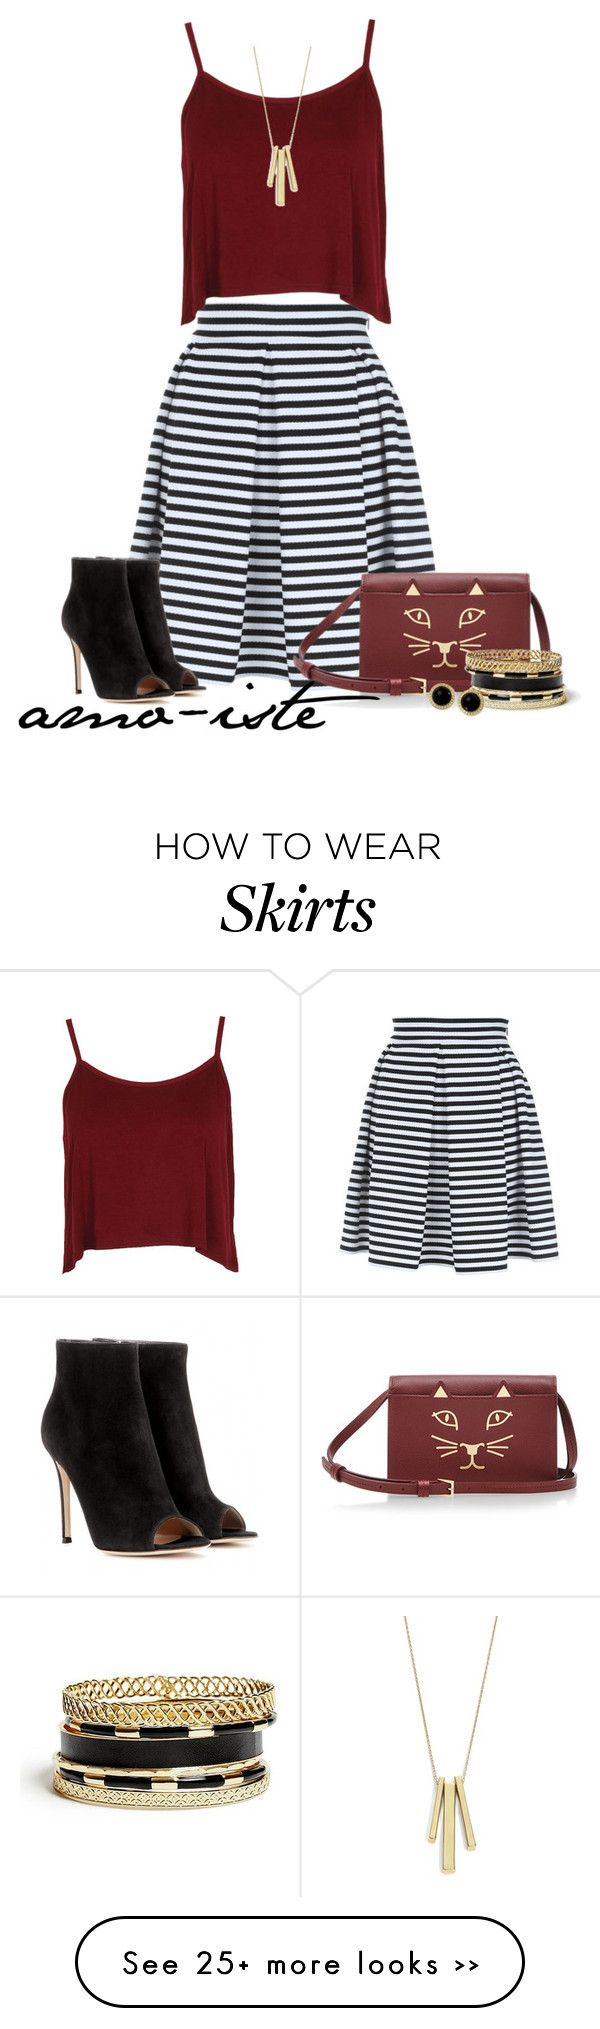 """Striped Skirt"" by amo-iste on Polyvore"